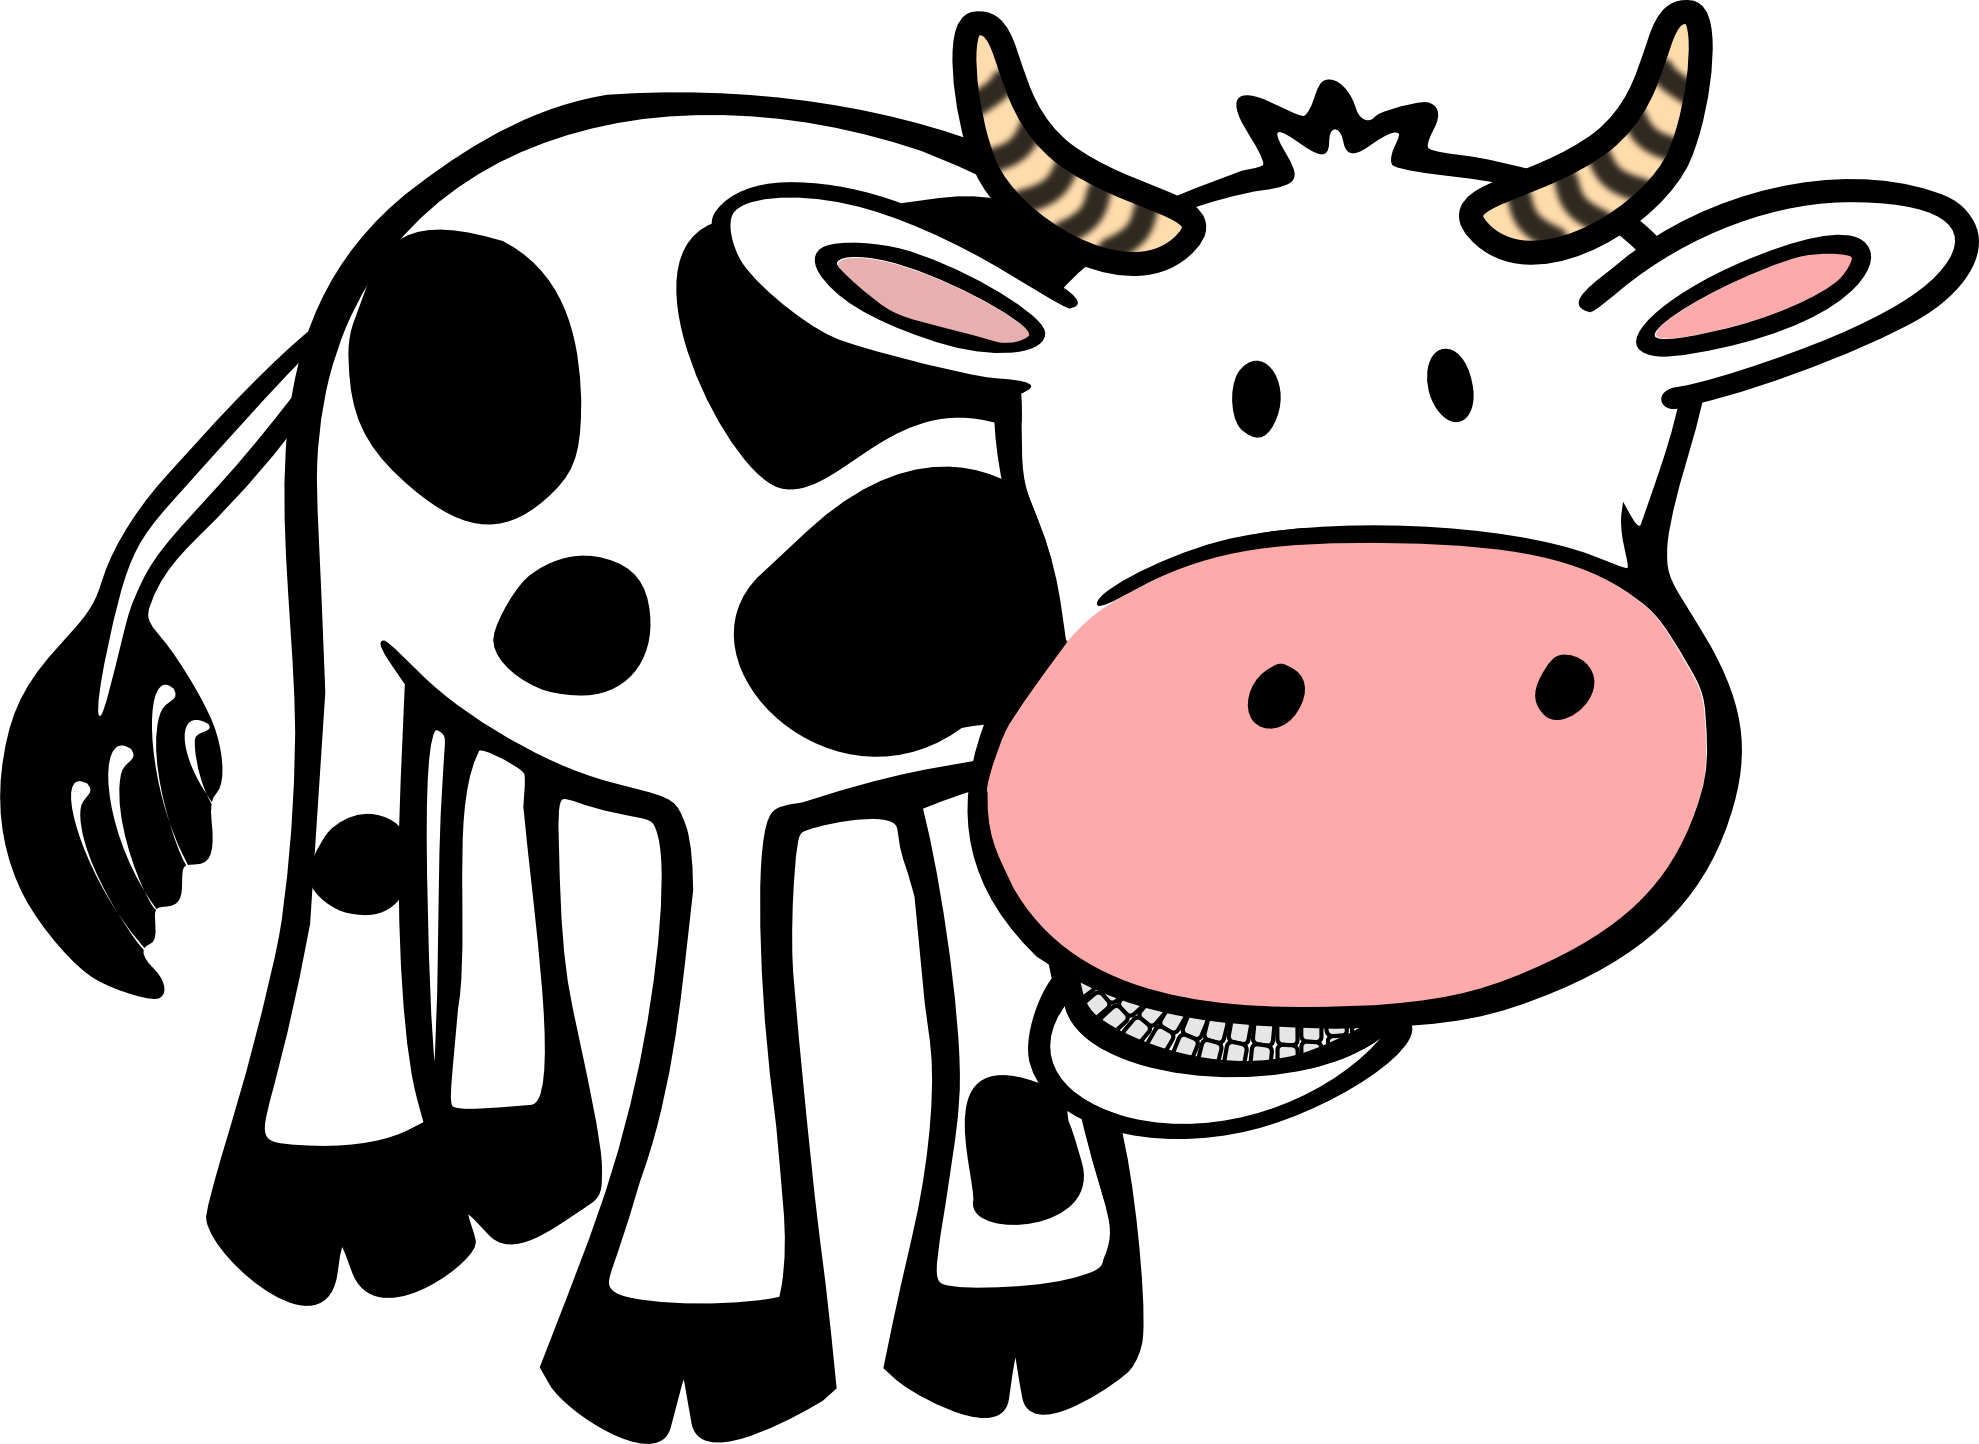 Cow clip art simple. Free black and white